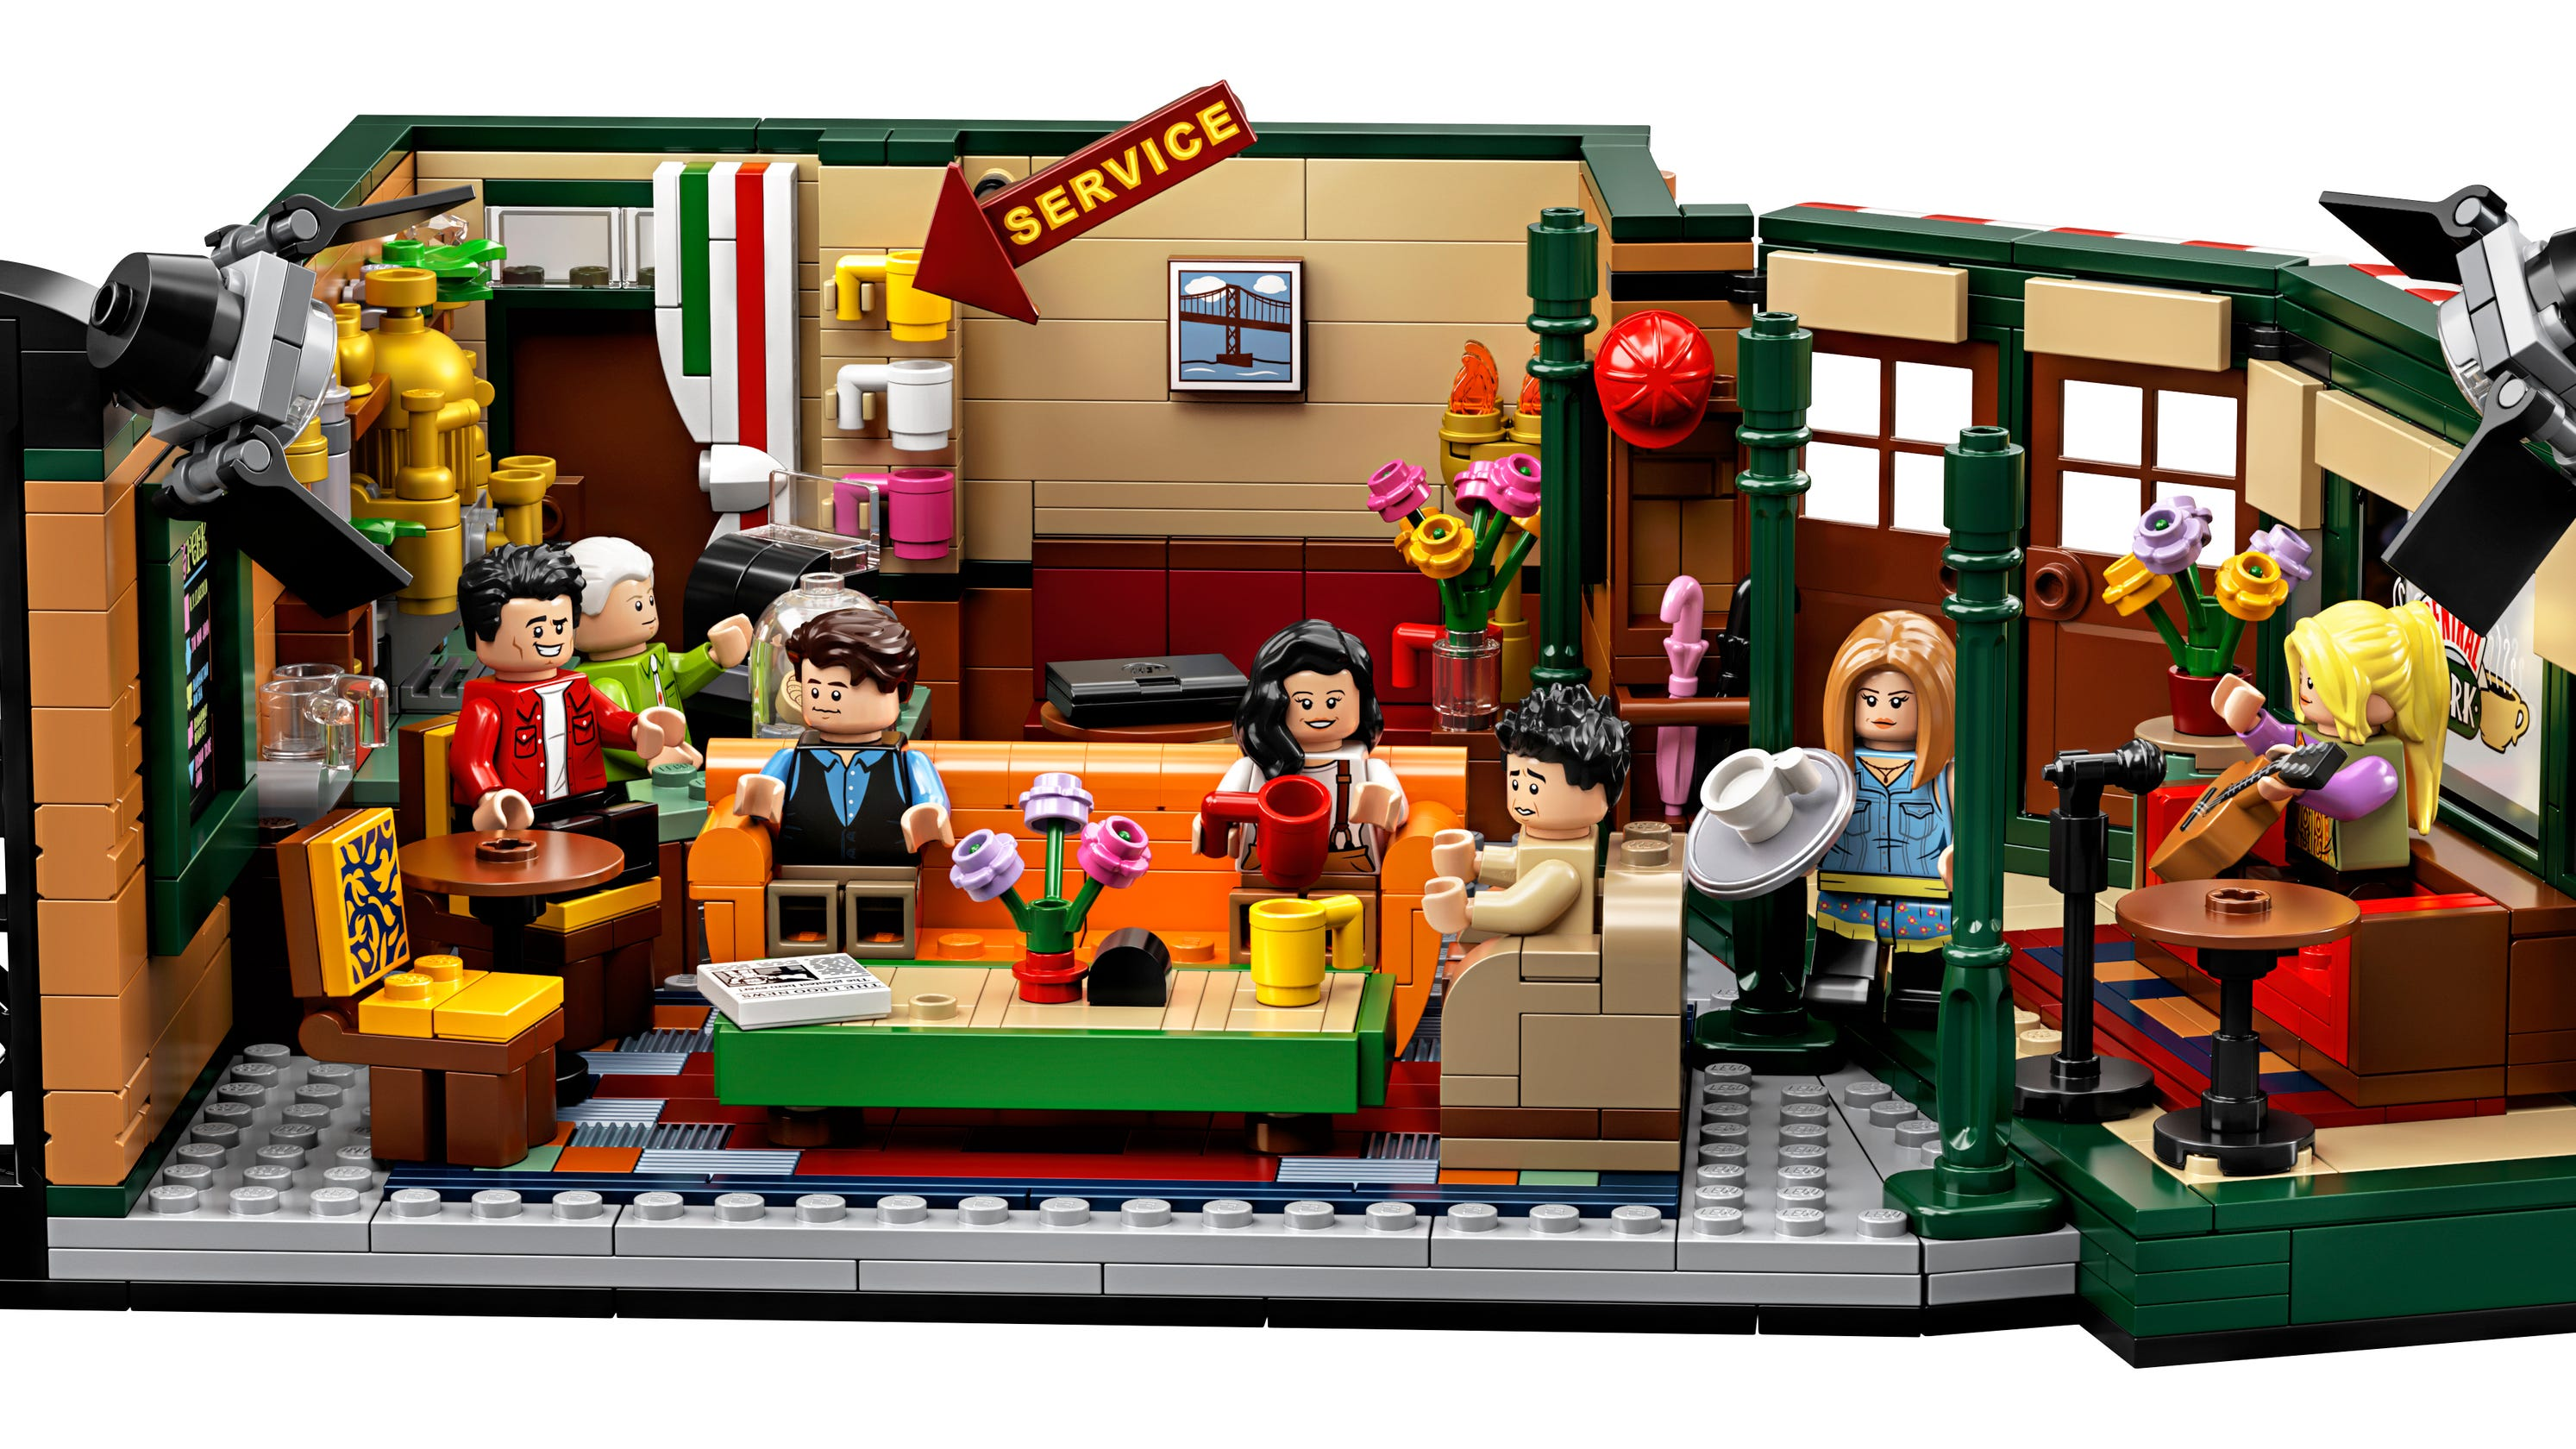 LEGO x FRIENDS Rachel Monica Joey Phoebe Chandler